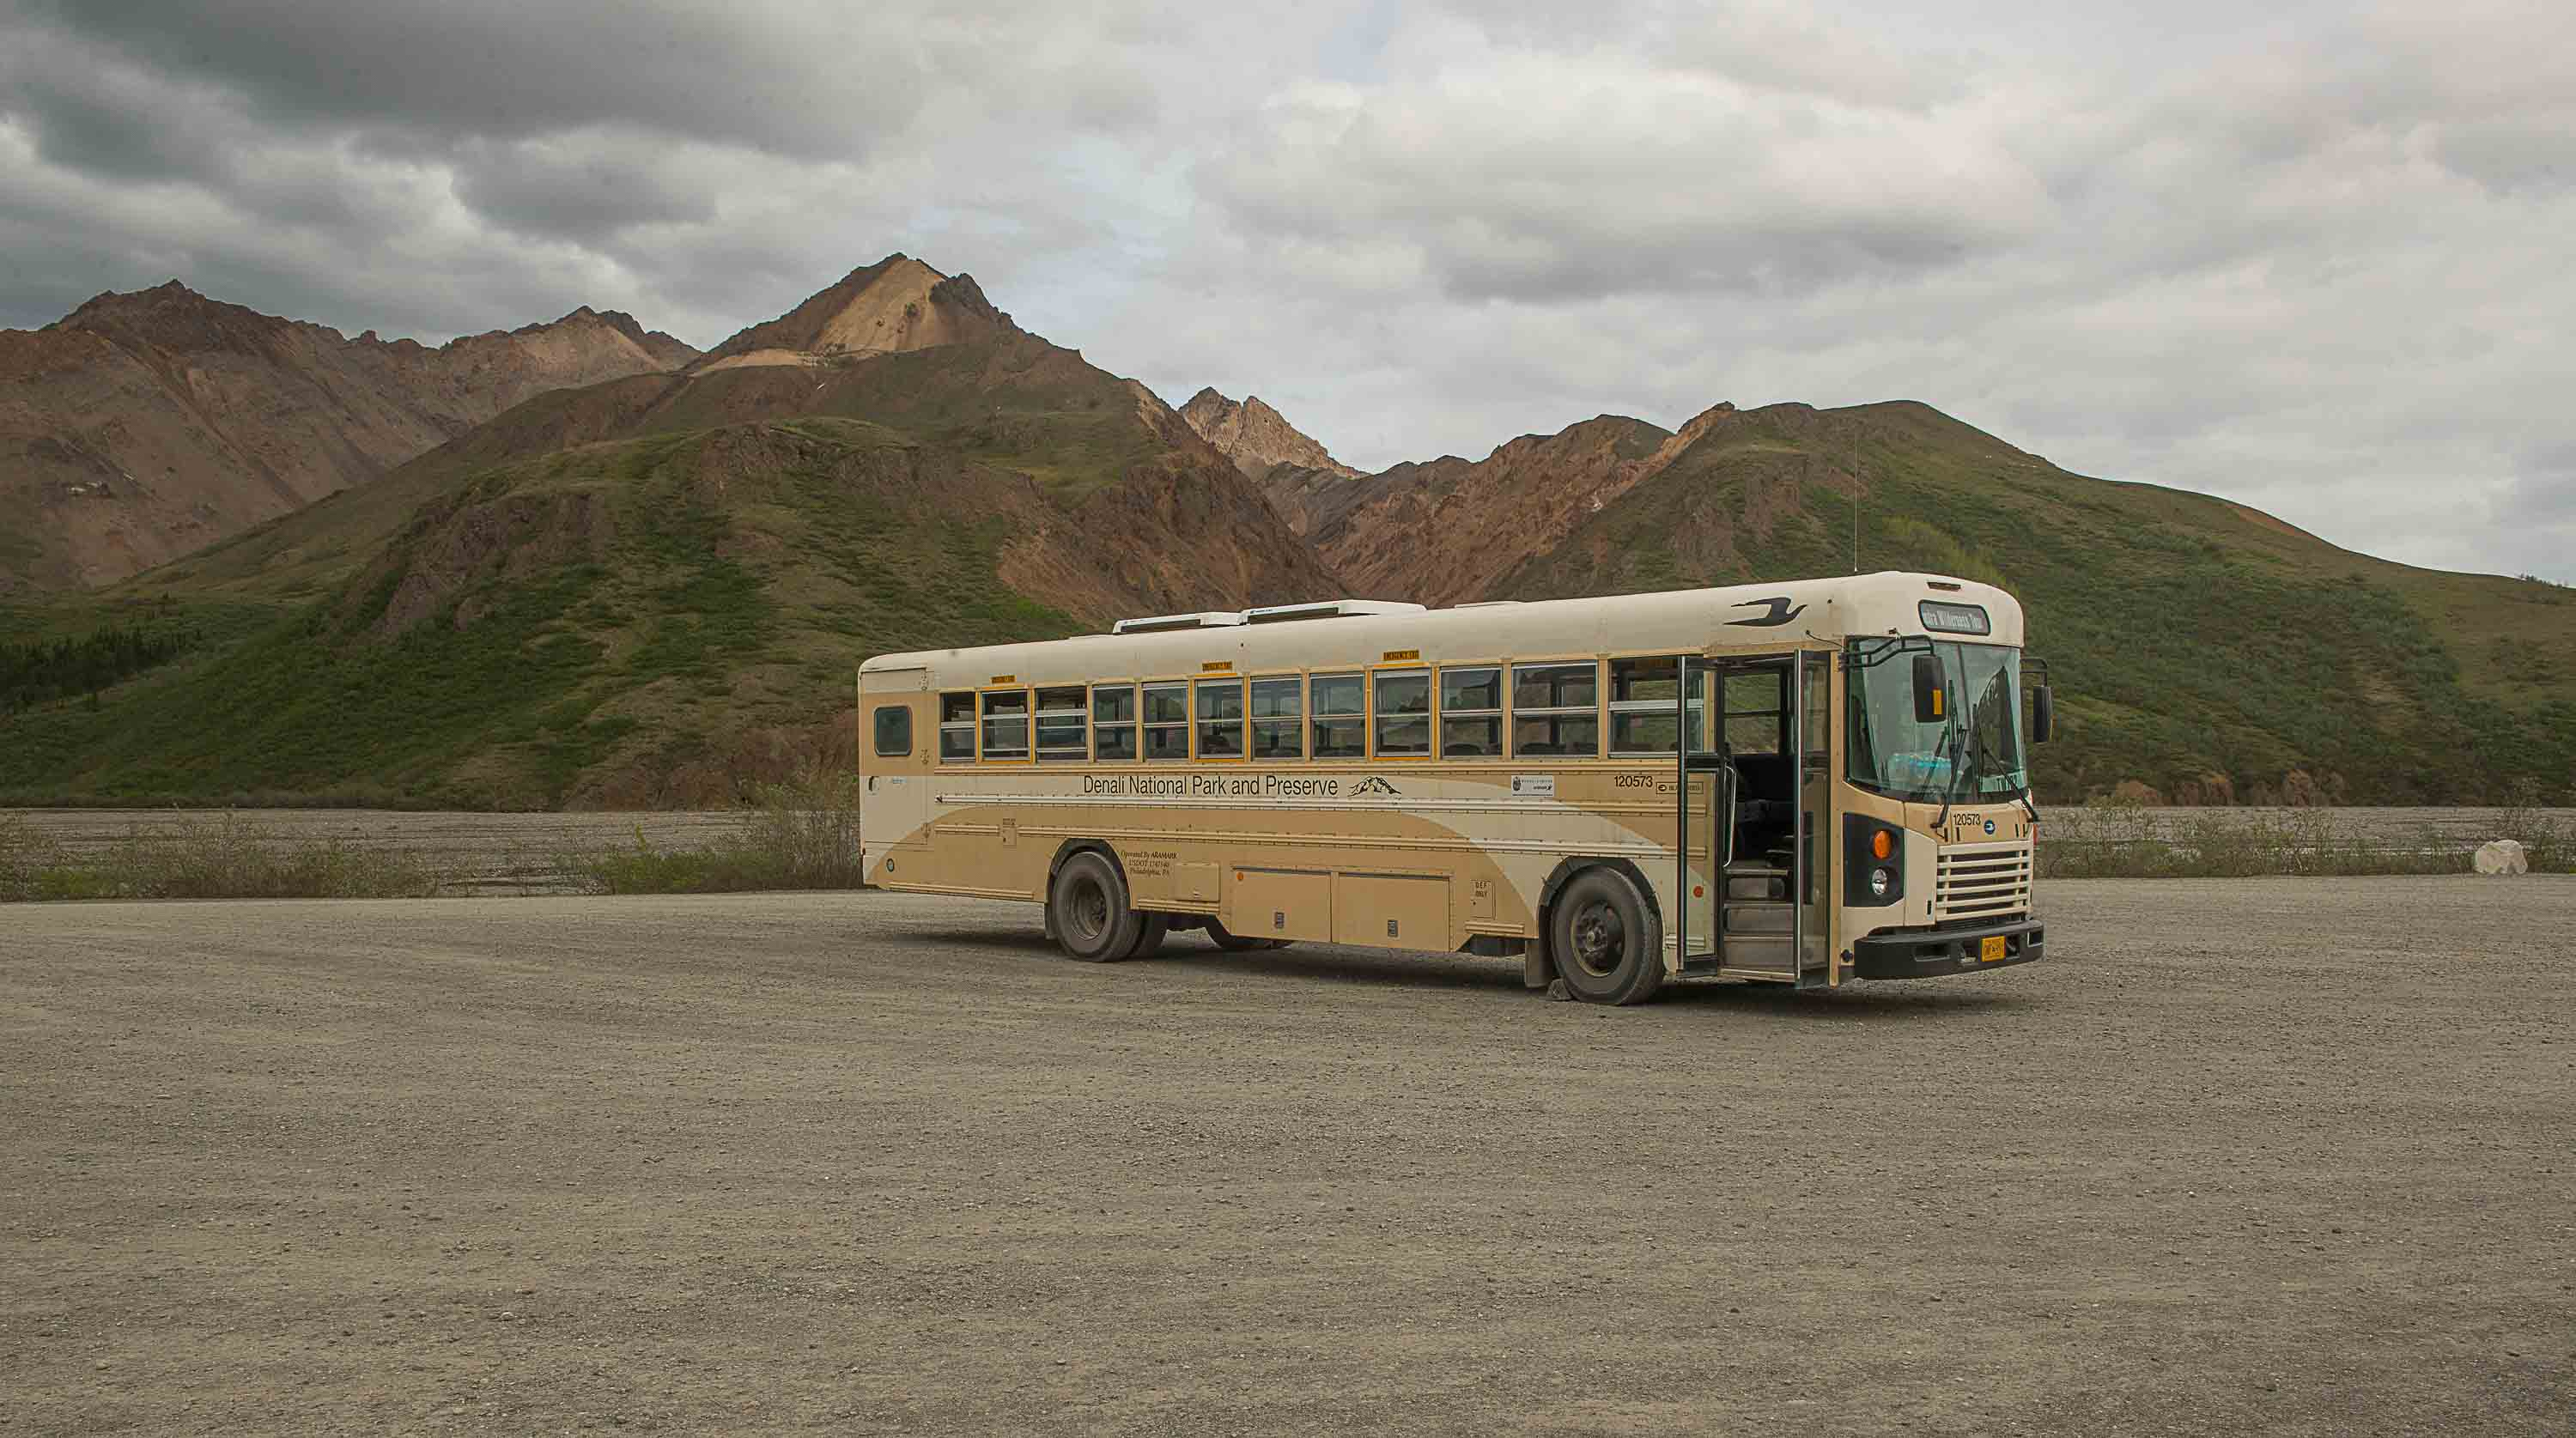 DENALI BUS (1 of 1)